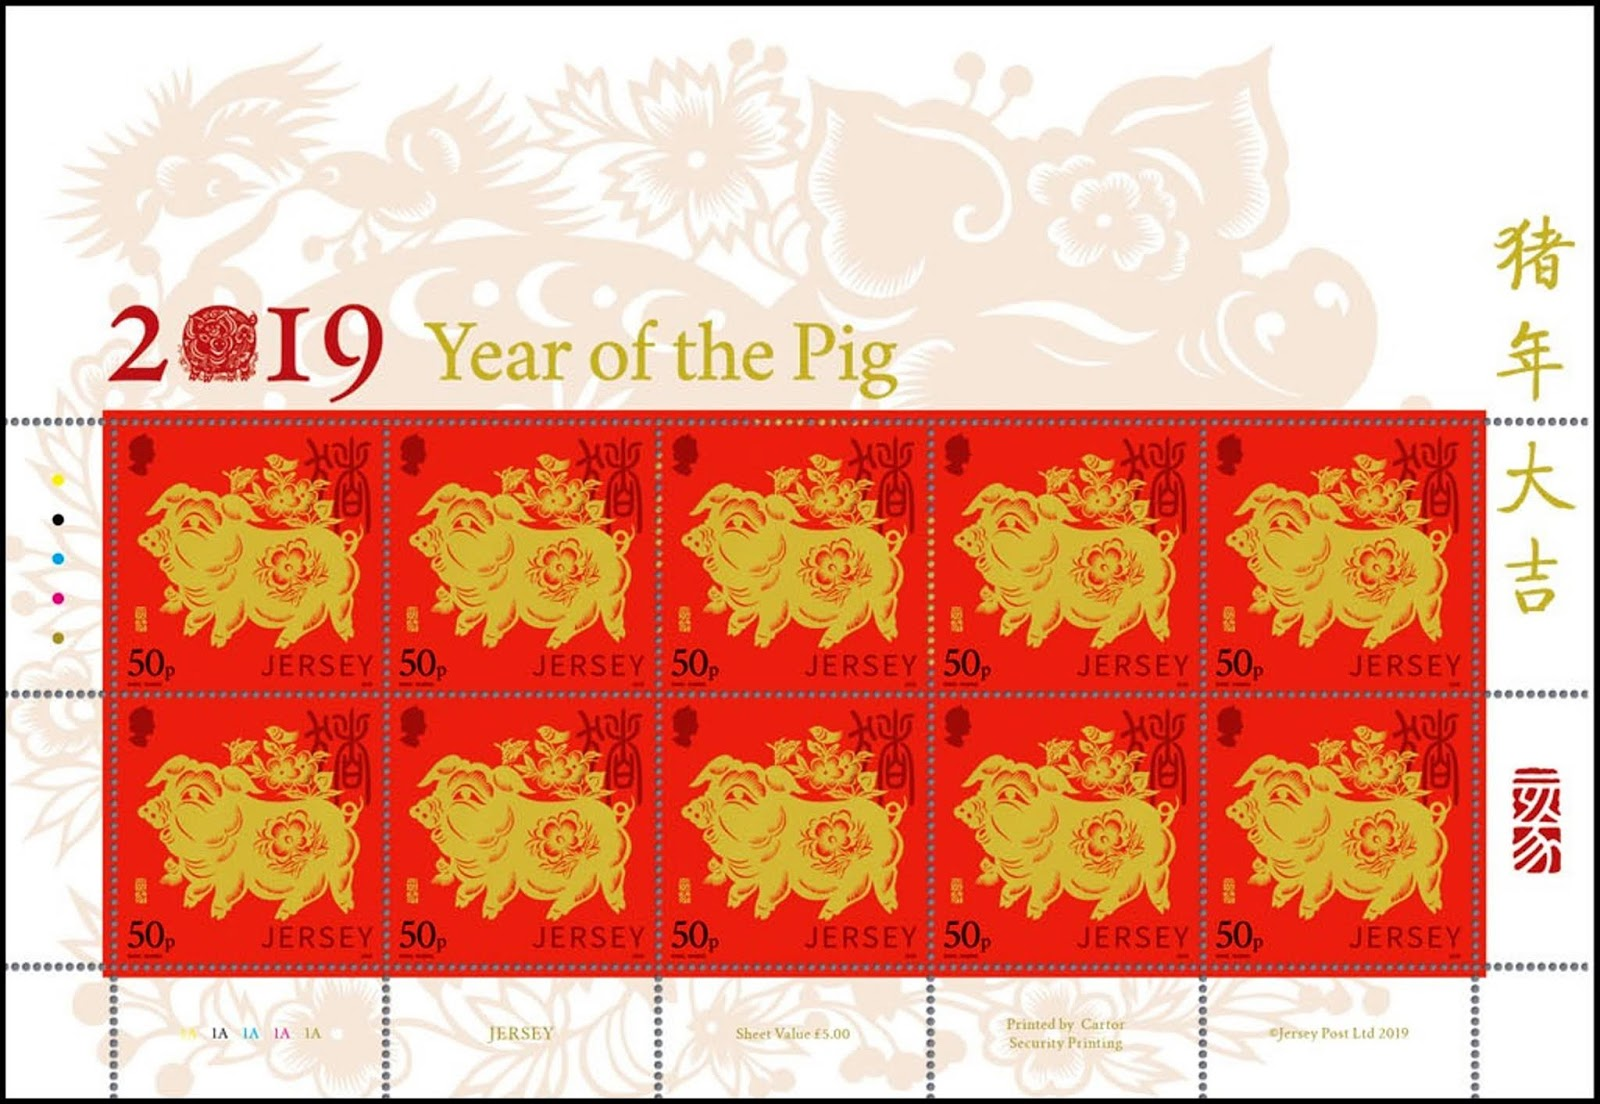 Jersey - Year of the Pig (January 4, 2019) sheet of 10